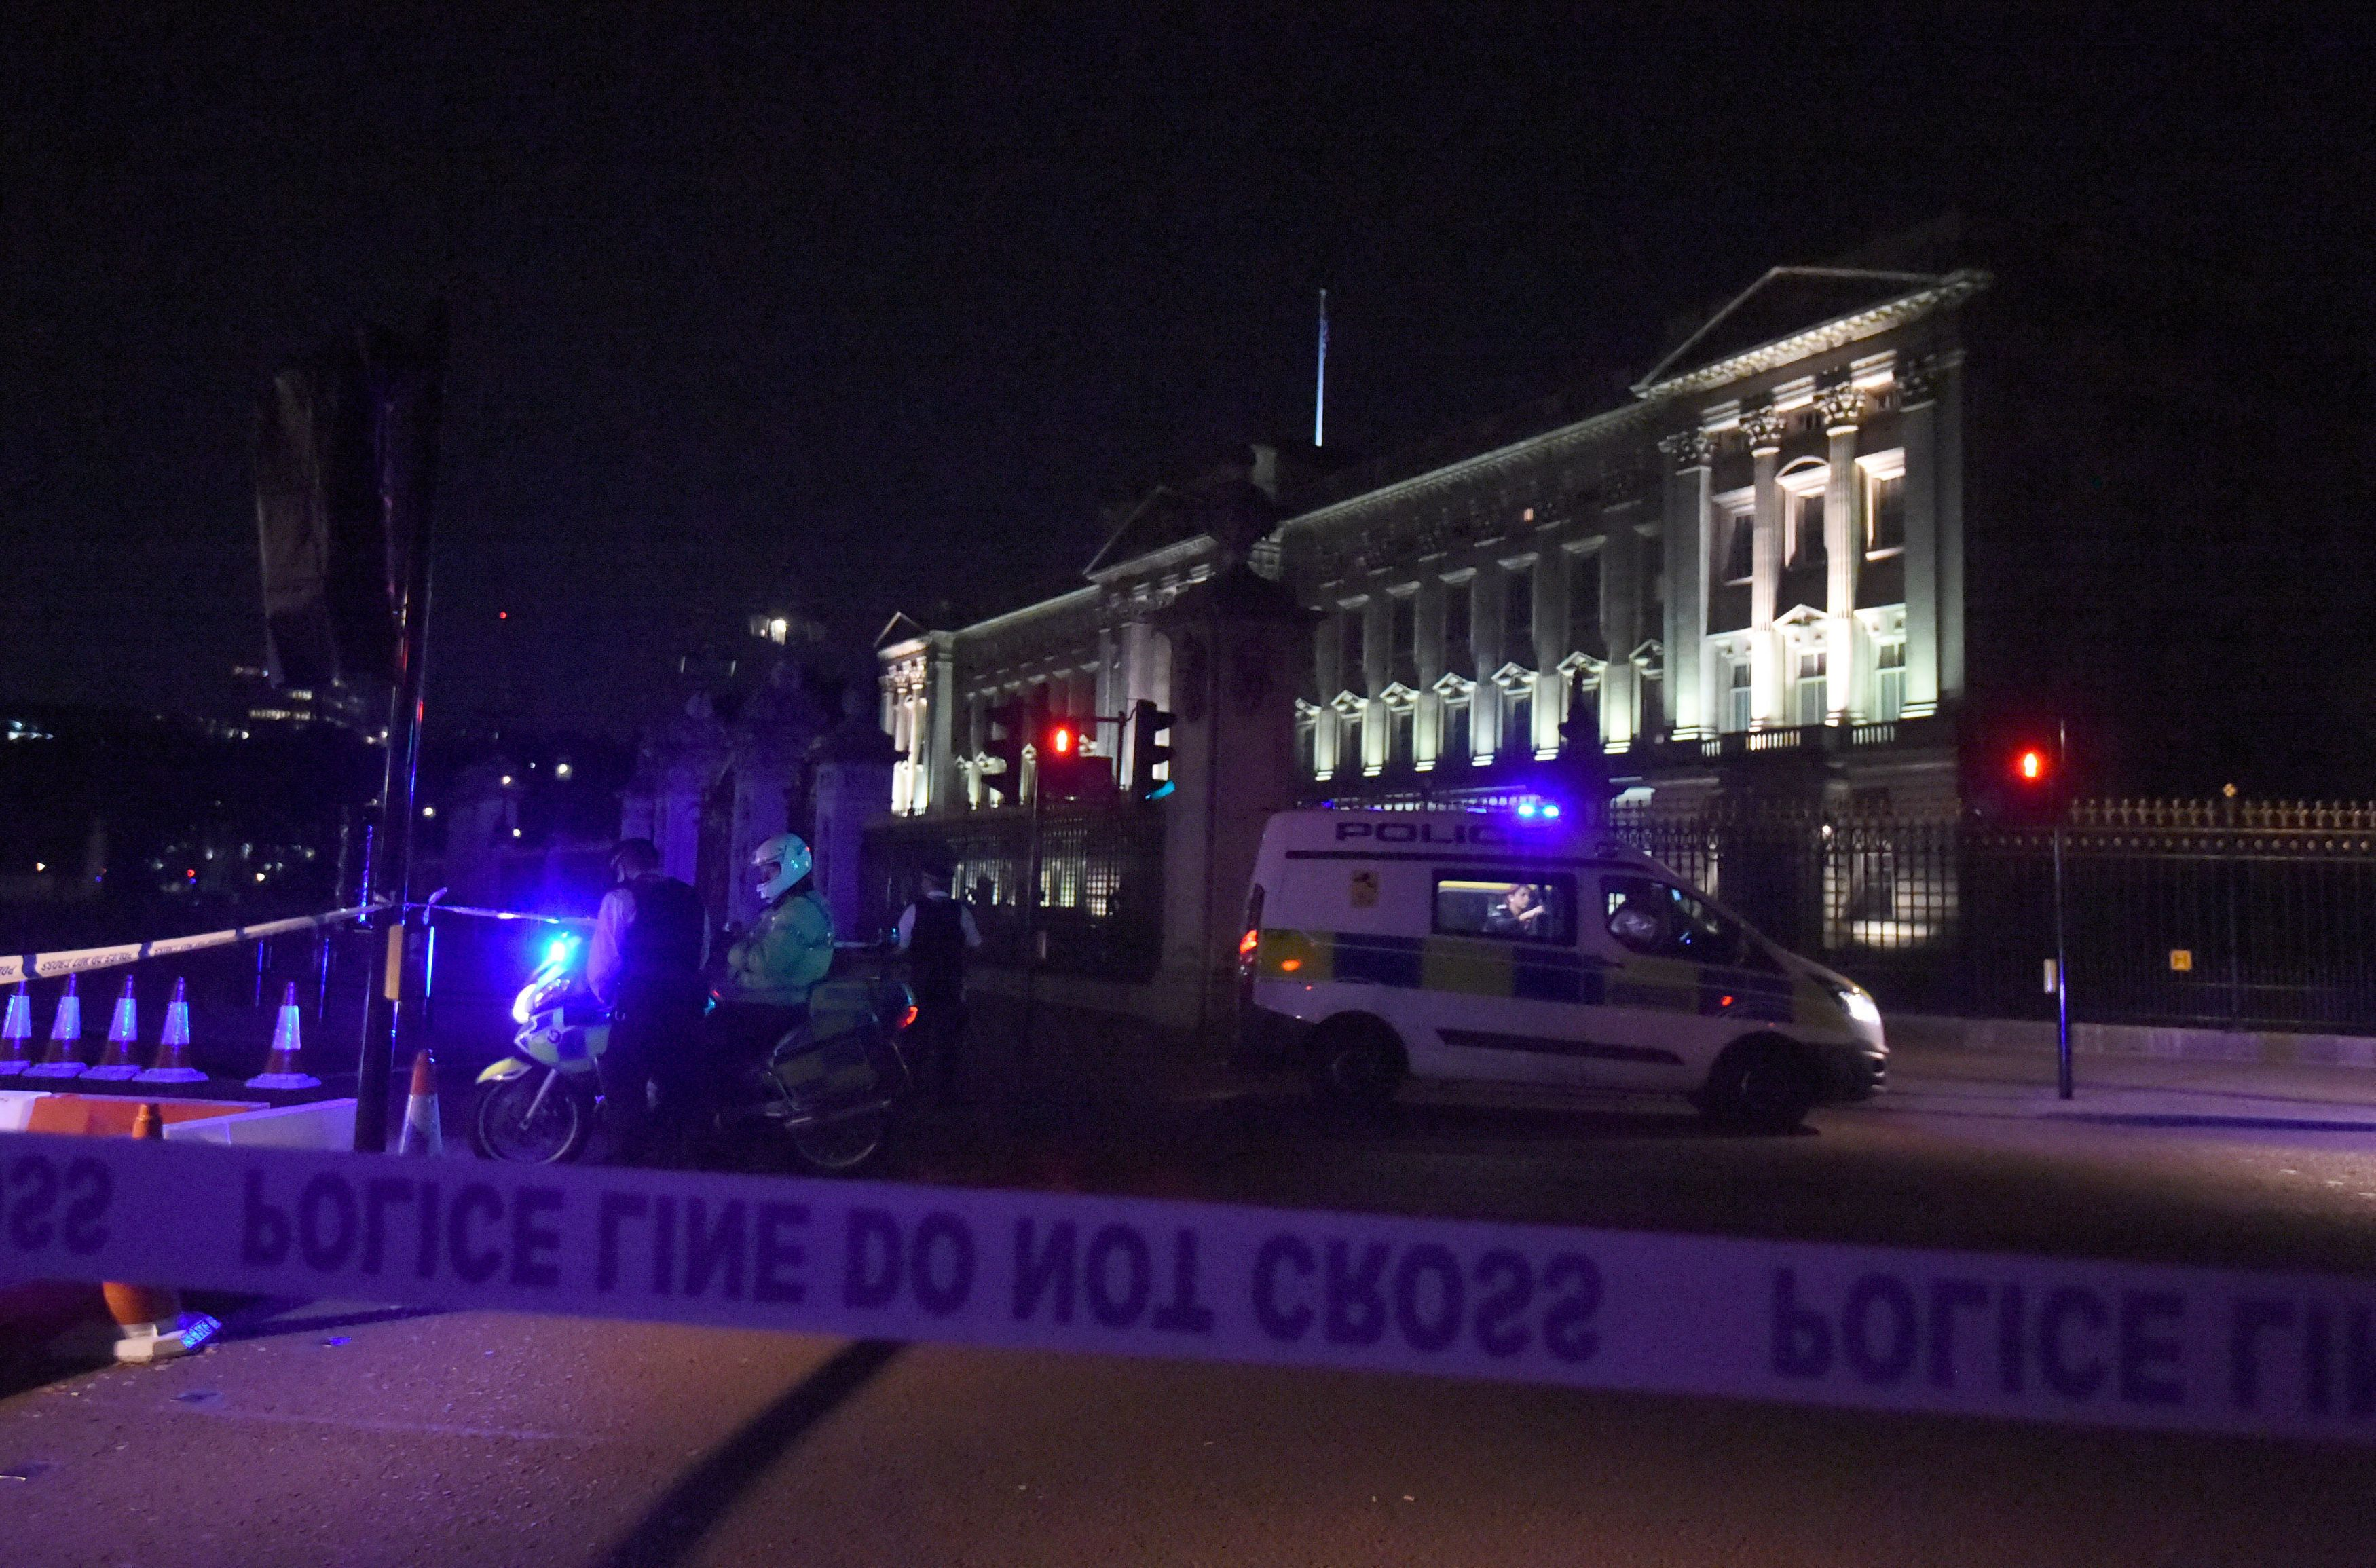 Man accused of terrorism after incident near Buckingham Palace